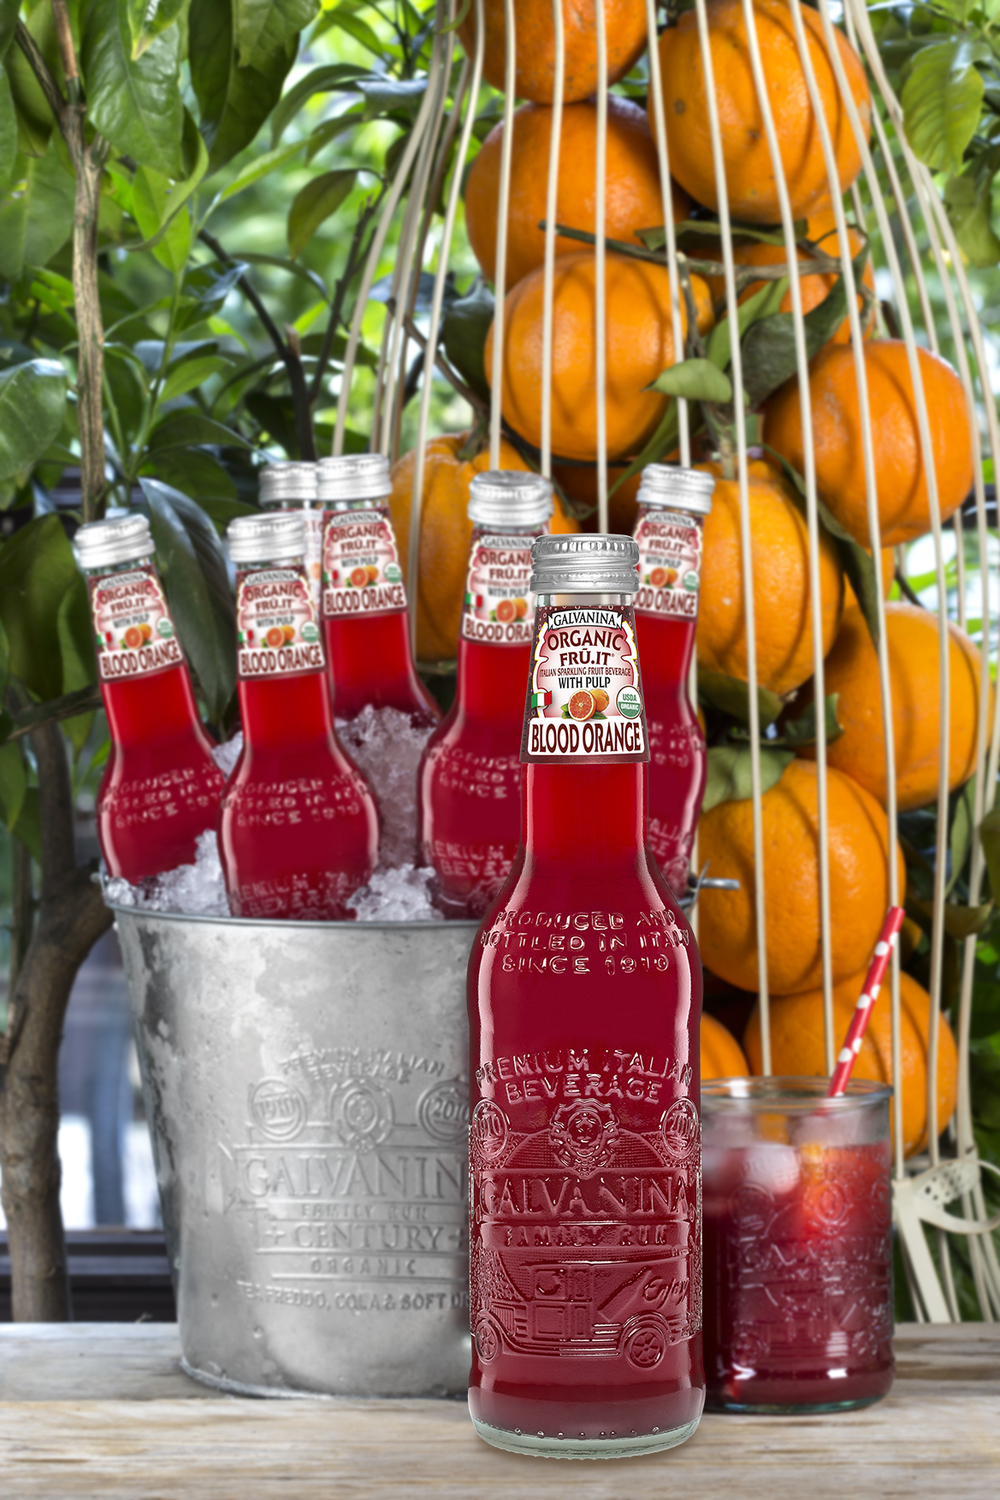 Organic Blood Orange sparkling beverage.  (Image courtesy of La Galvanina)